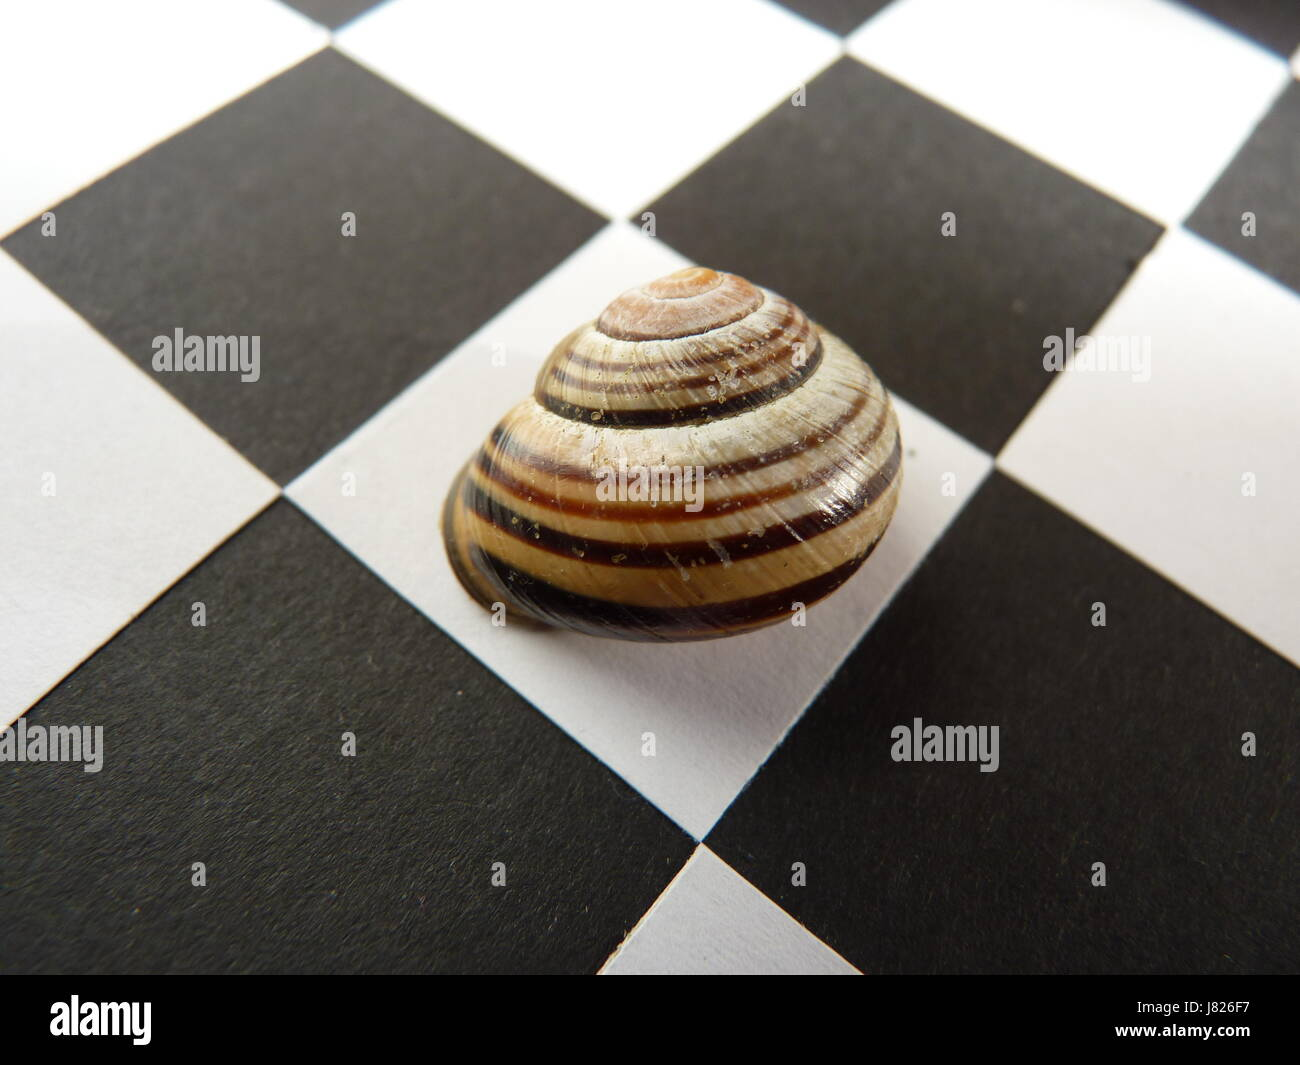 MolluscMultiple striped snail shells displayed on a black and white chequer board. Squared on. - Stock Image